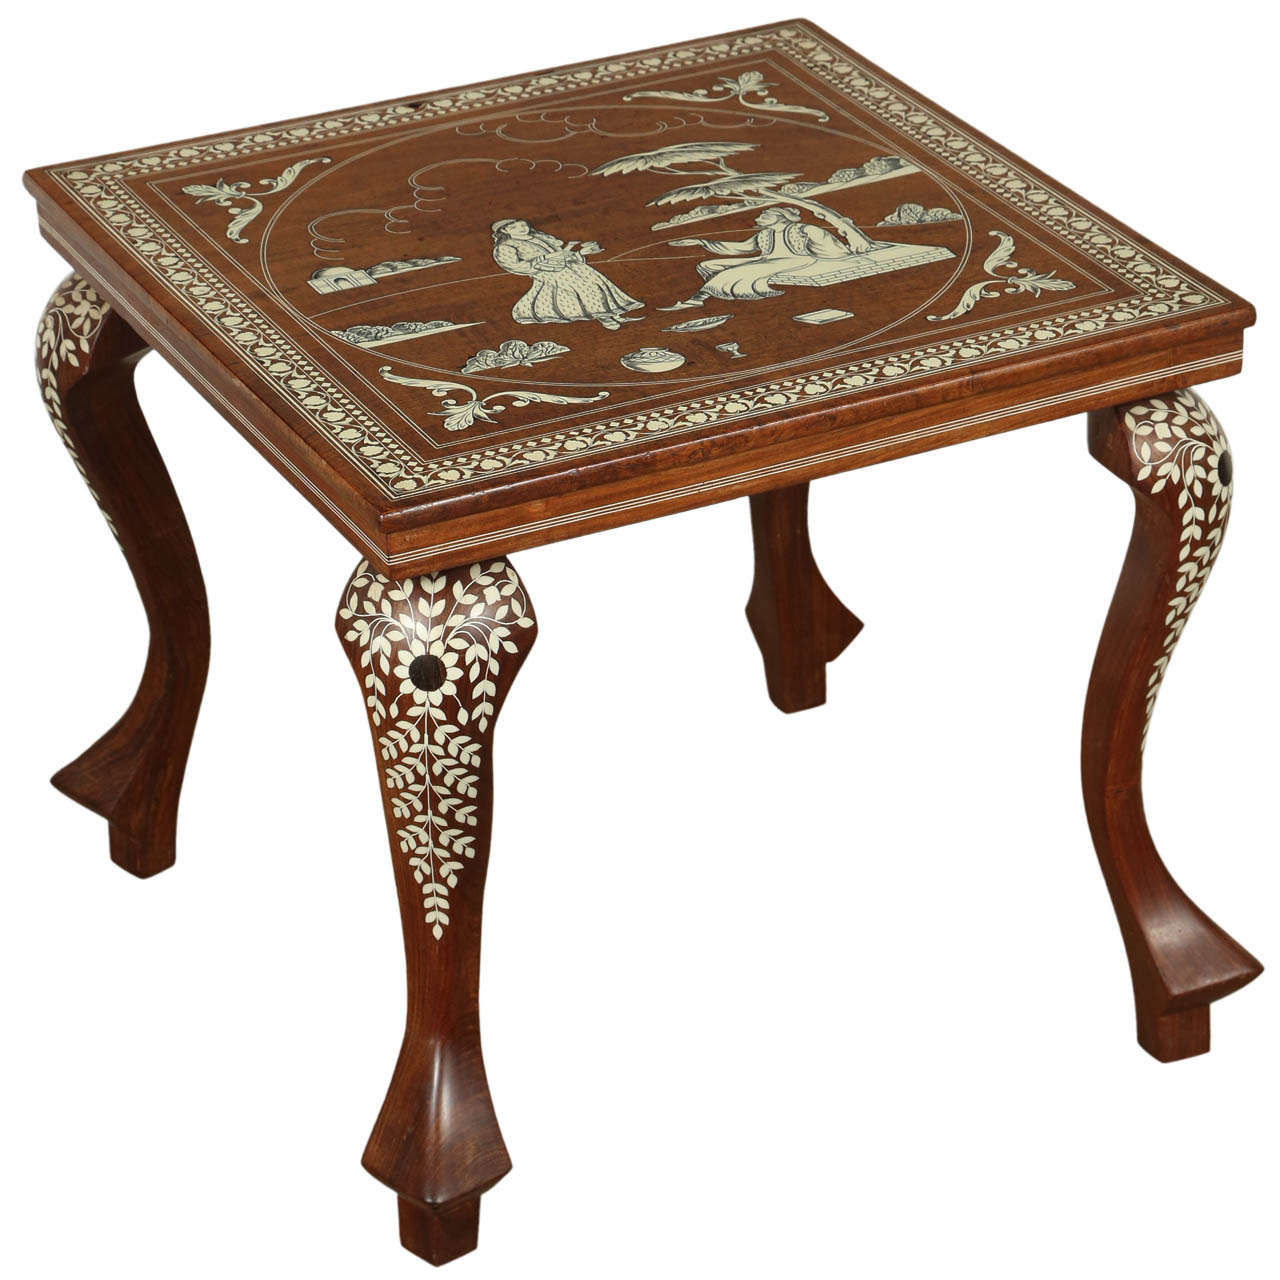 bone side tables for wood inlay accent table indo persian inlaid square mosaic tile coffee skinny hallway dining room centerpieces lamps without electricity outdoor winter cover